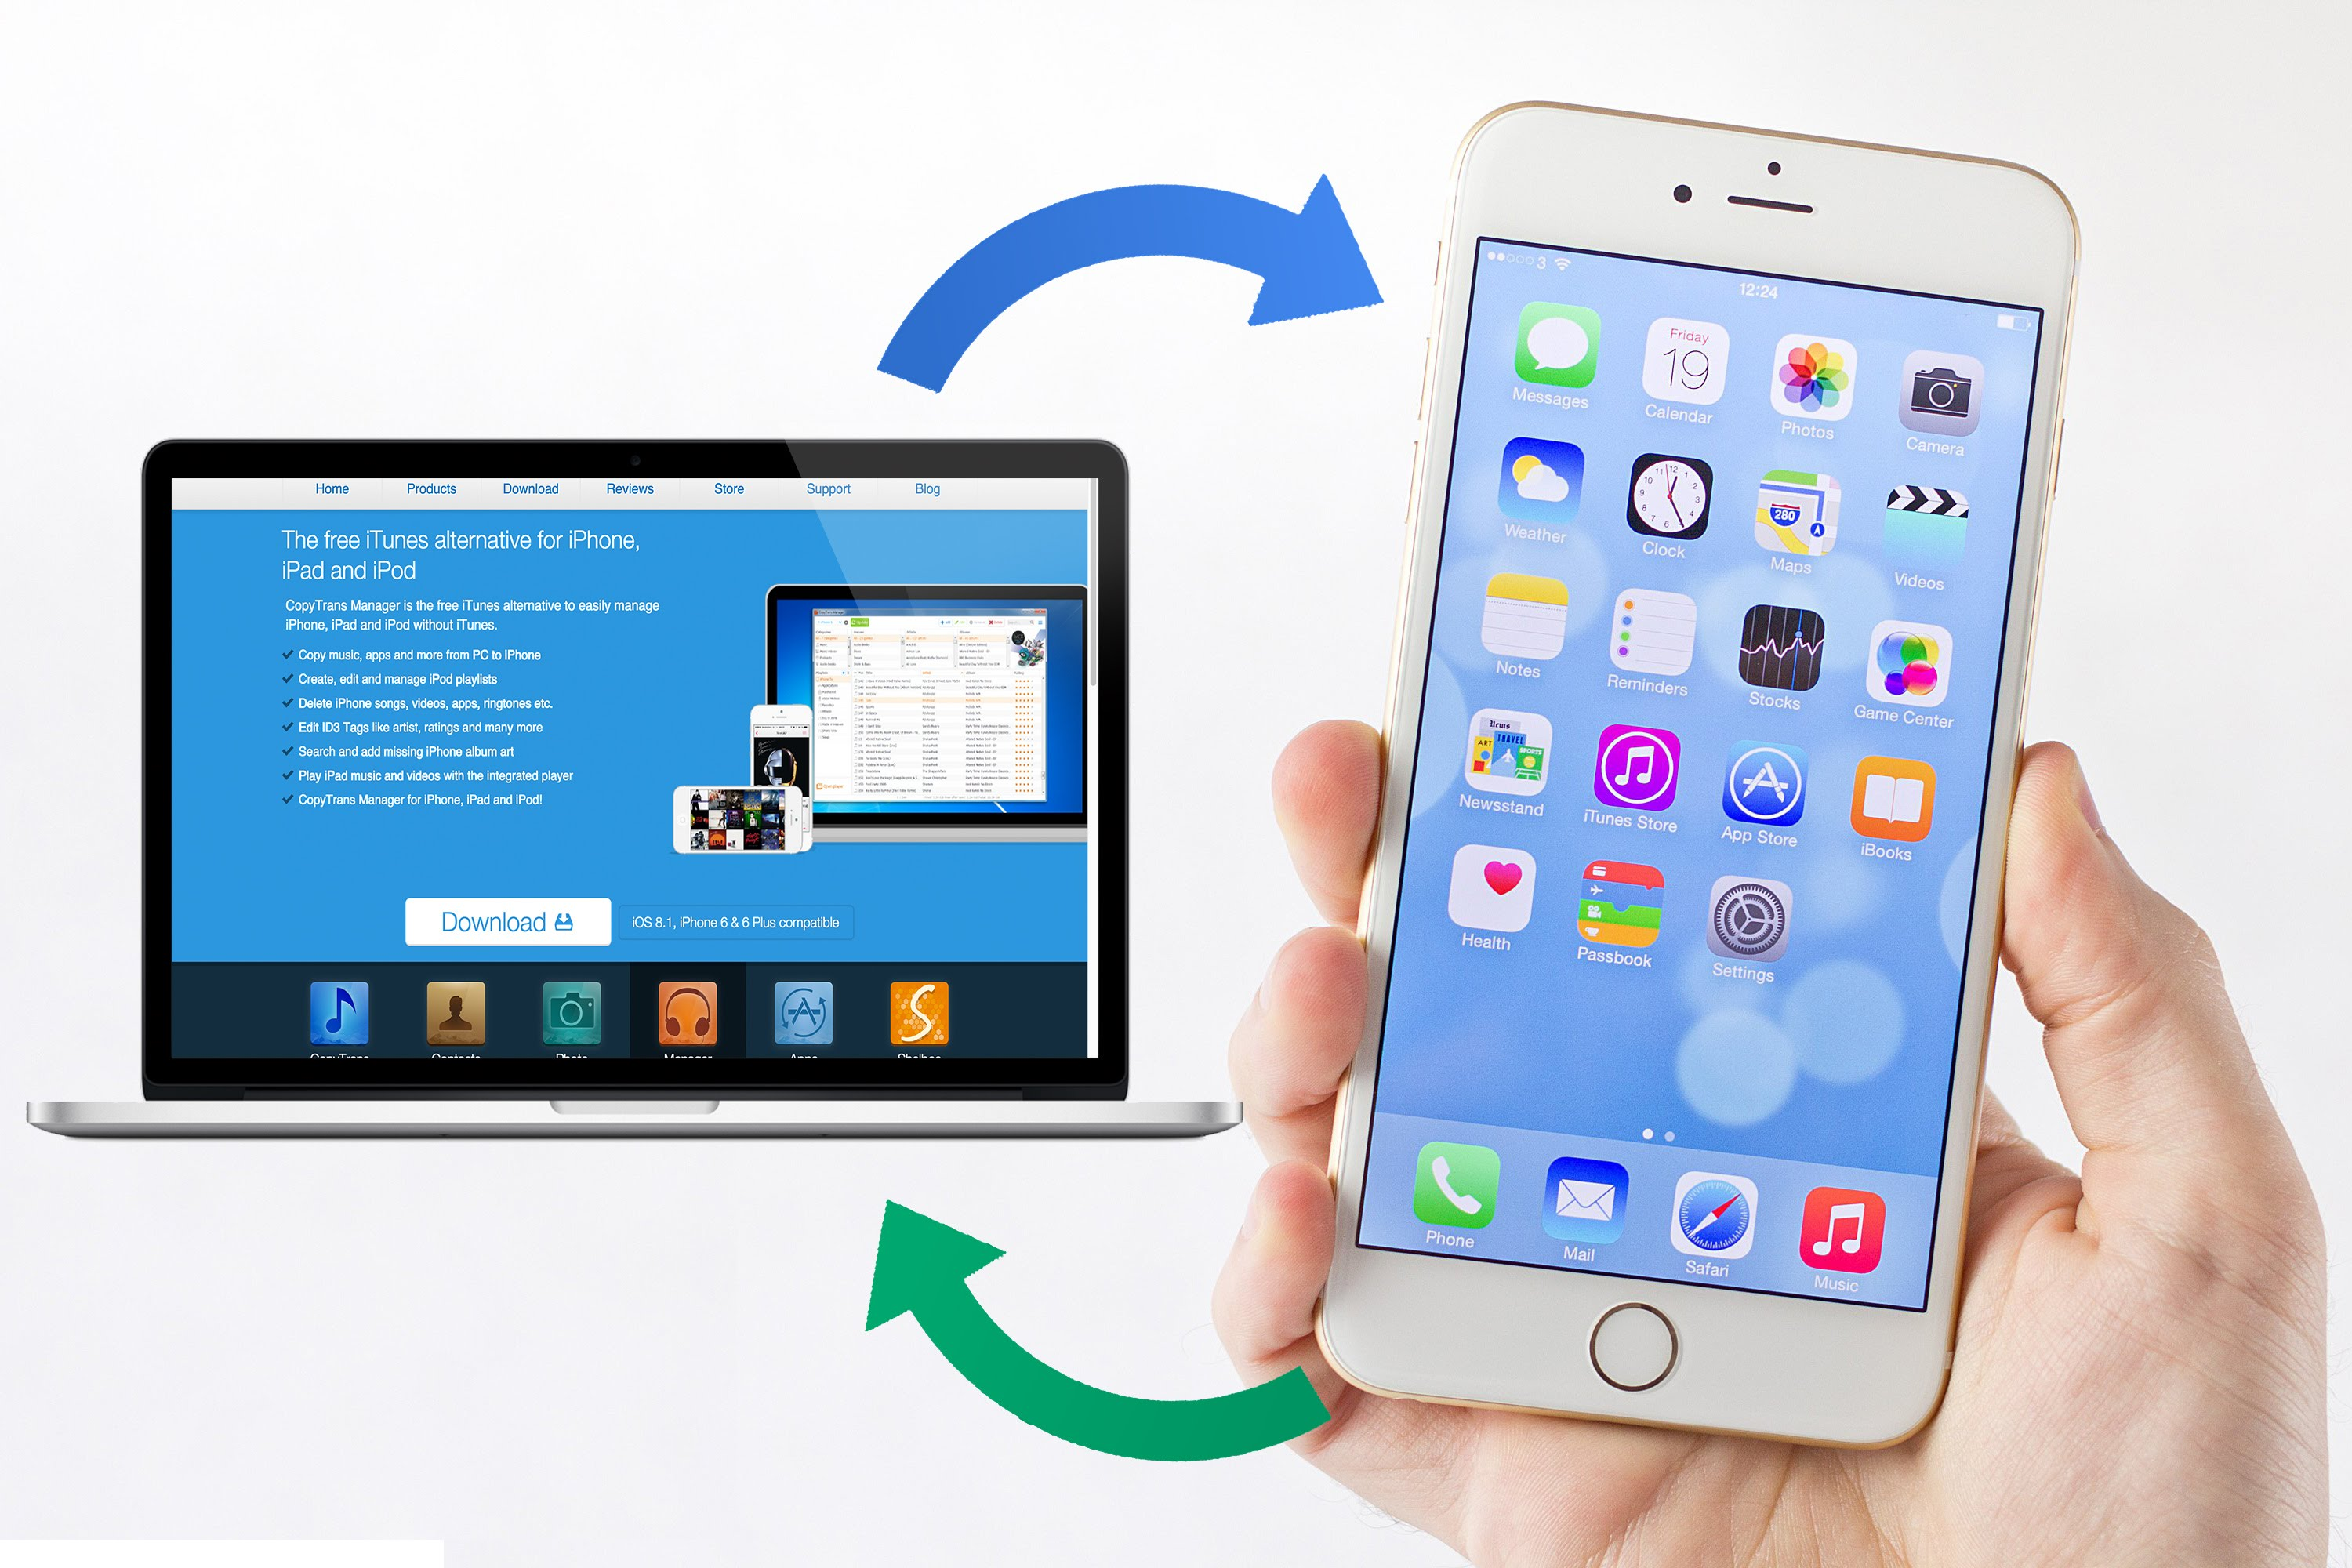 How to Transfer Music From PC to iPhone